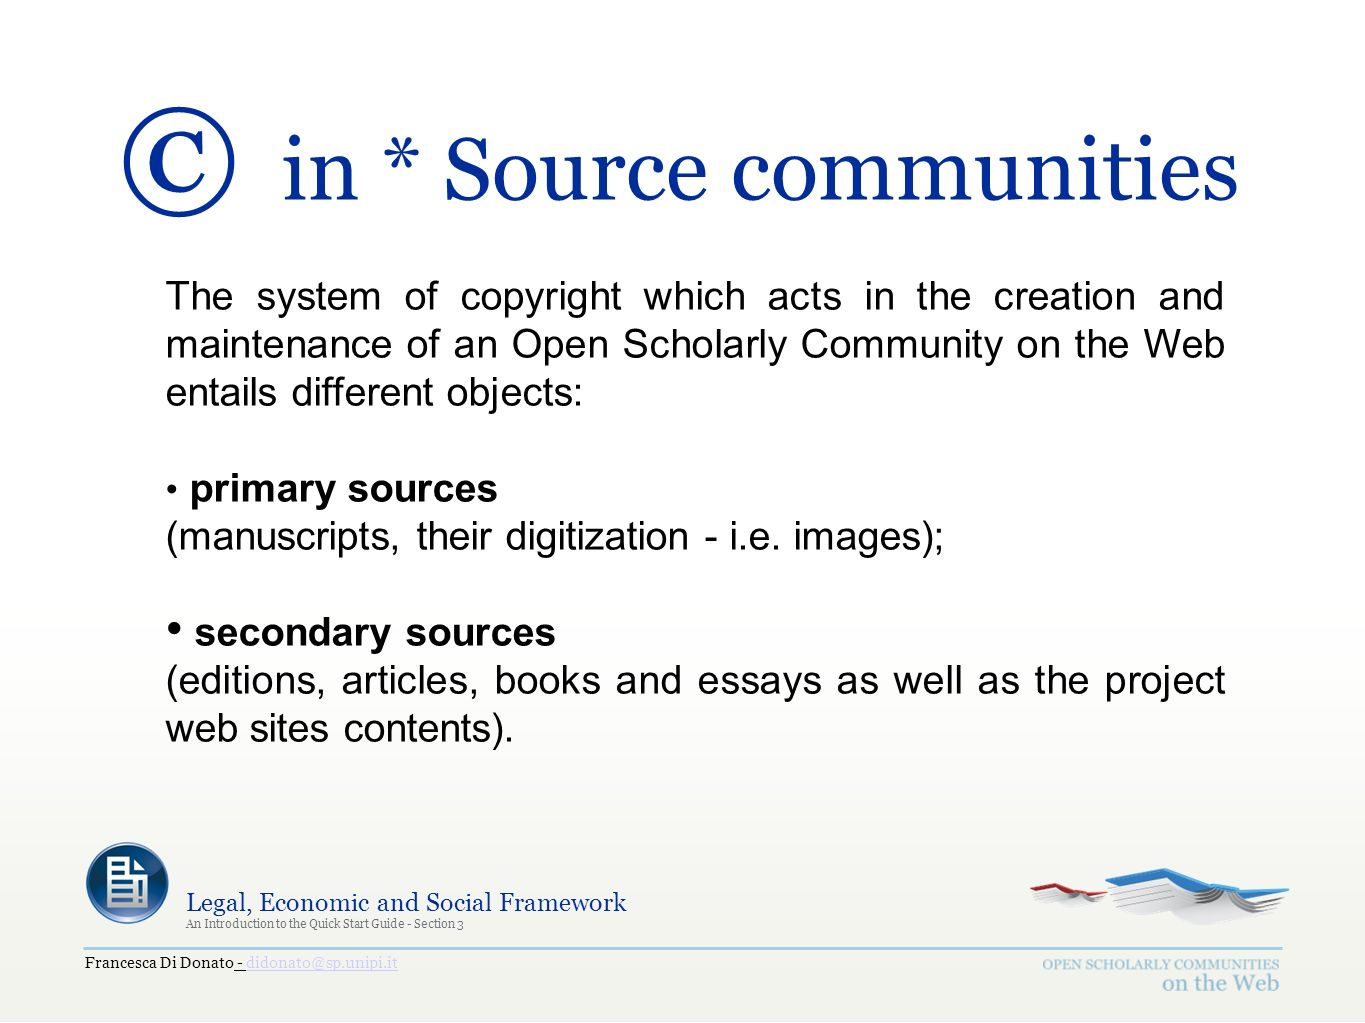 Francesca Di Donato - didonato@sp.unipi.itdidonato@sp.unipi.it Legal, Economic and Social Framework An Introduction to the Quick Start Guide - Section 3 © in * Source communities The system of copyright which acts in the creation and maintenance of an Open Scholarly Community on the Web entails different objects: primary sources (manuscripts, their digitization - i.e.